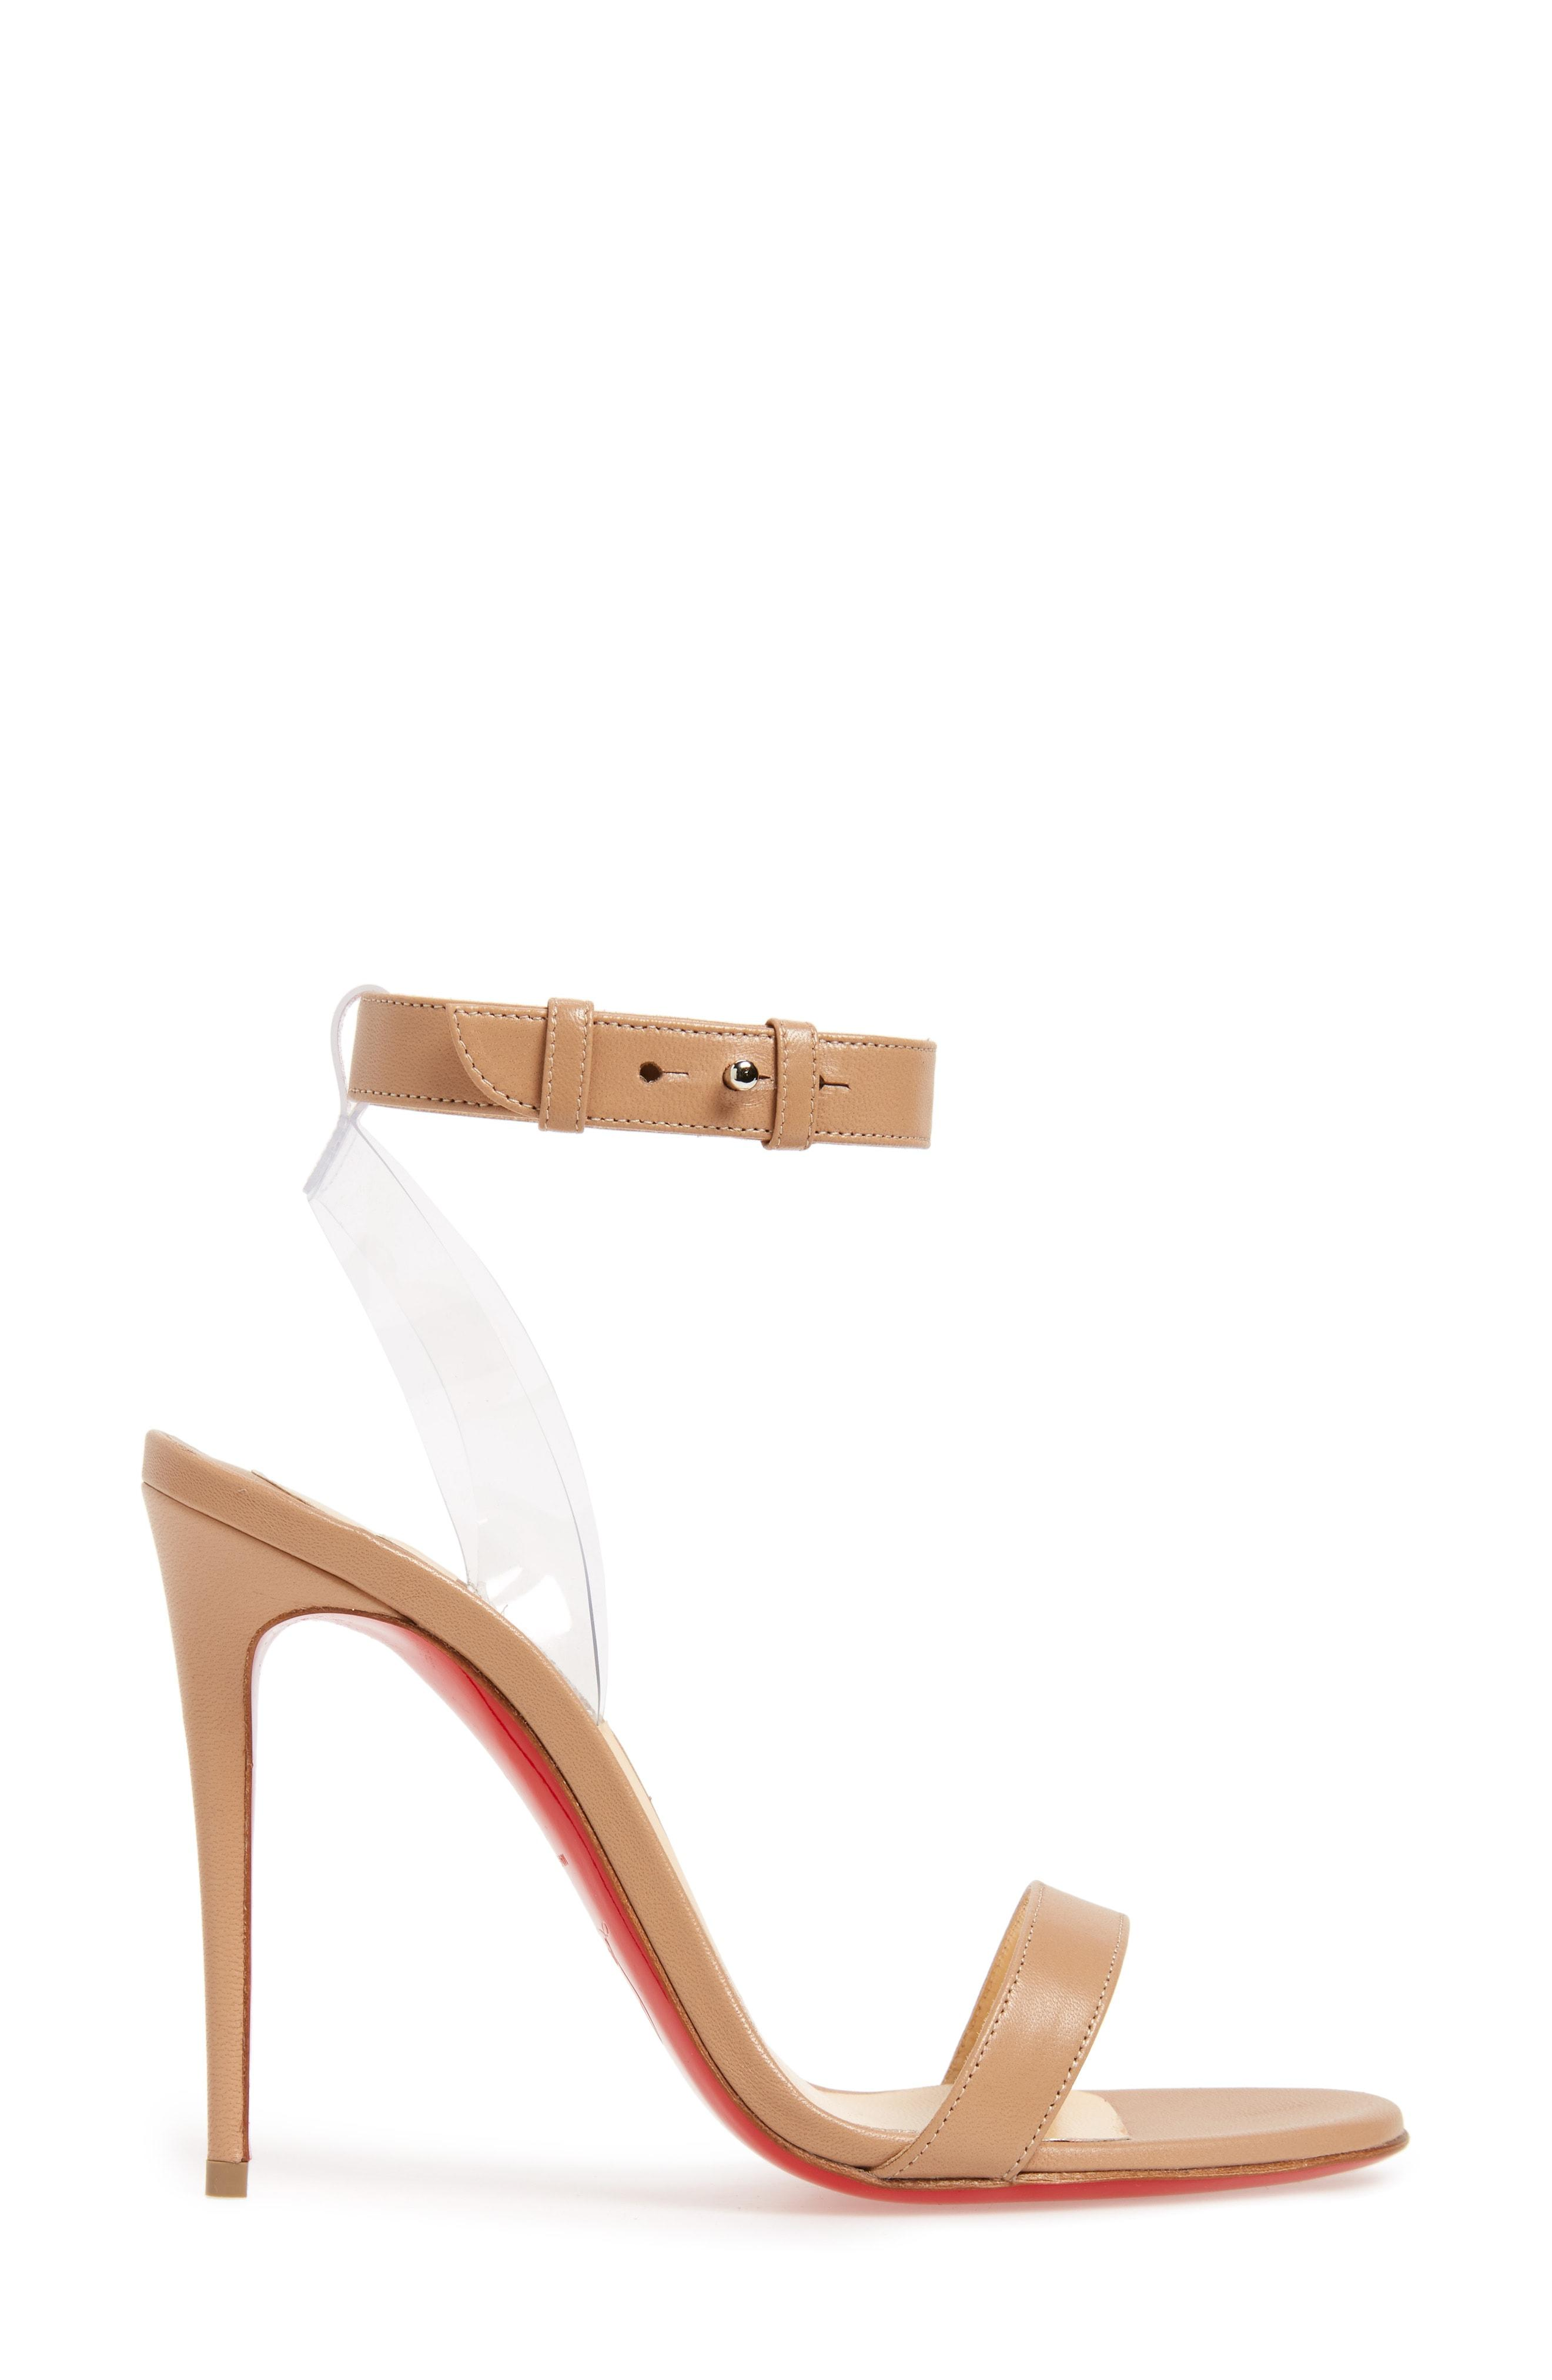 9340c780900c CHRISTIAN LOUBOUTIN. Jonatina Illusion Ankle-Strap Red Sole Sandals ...